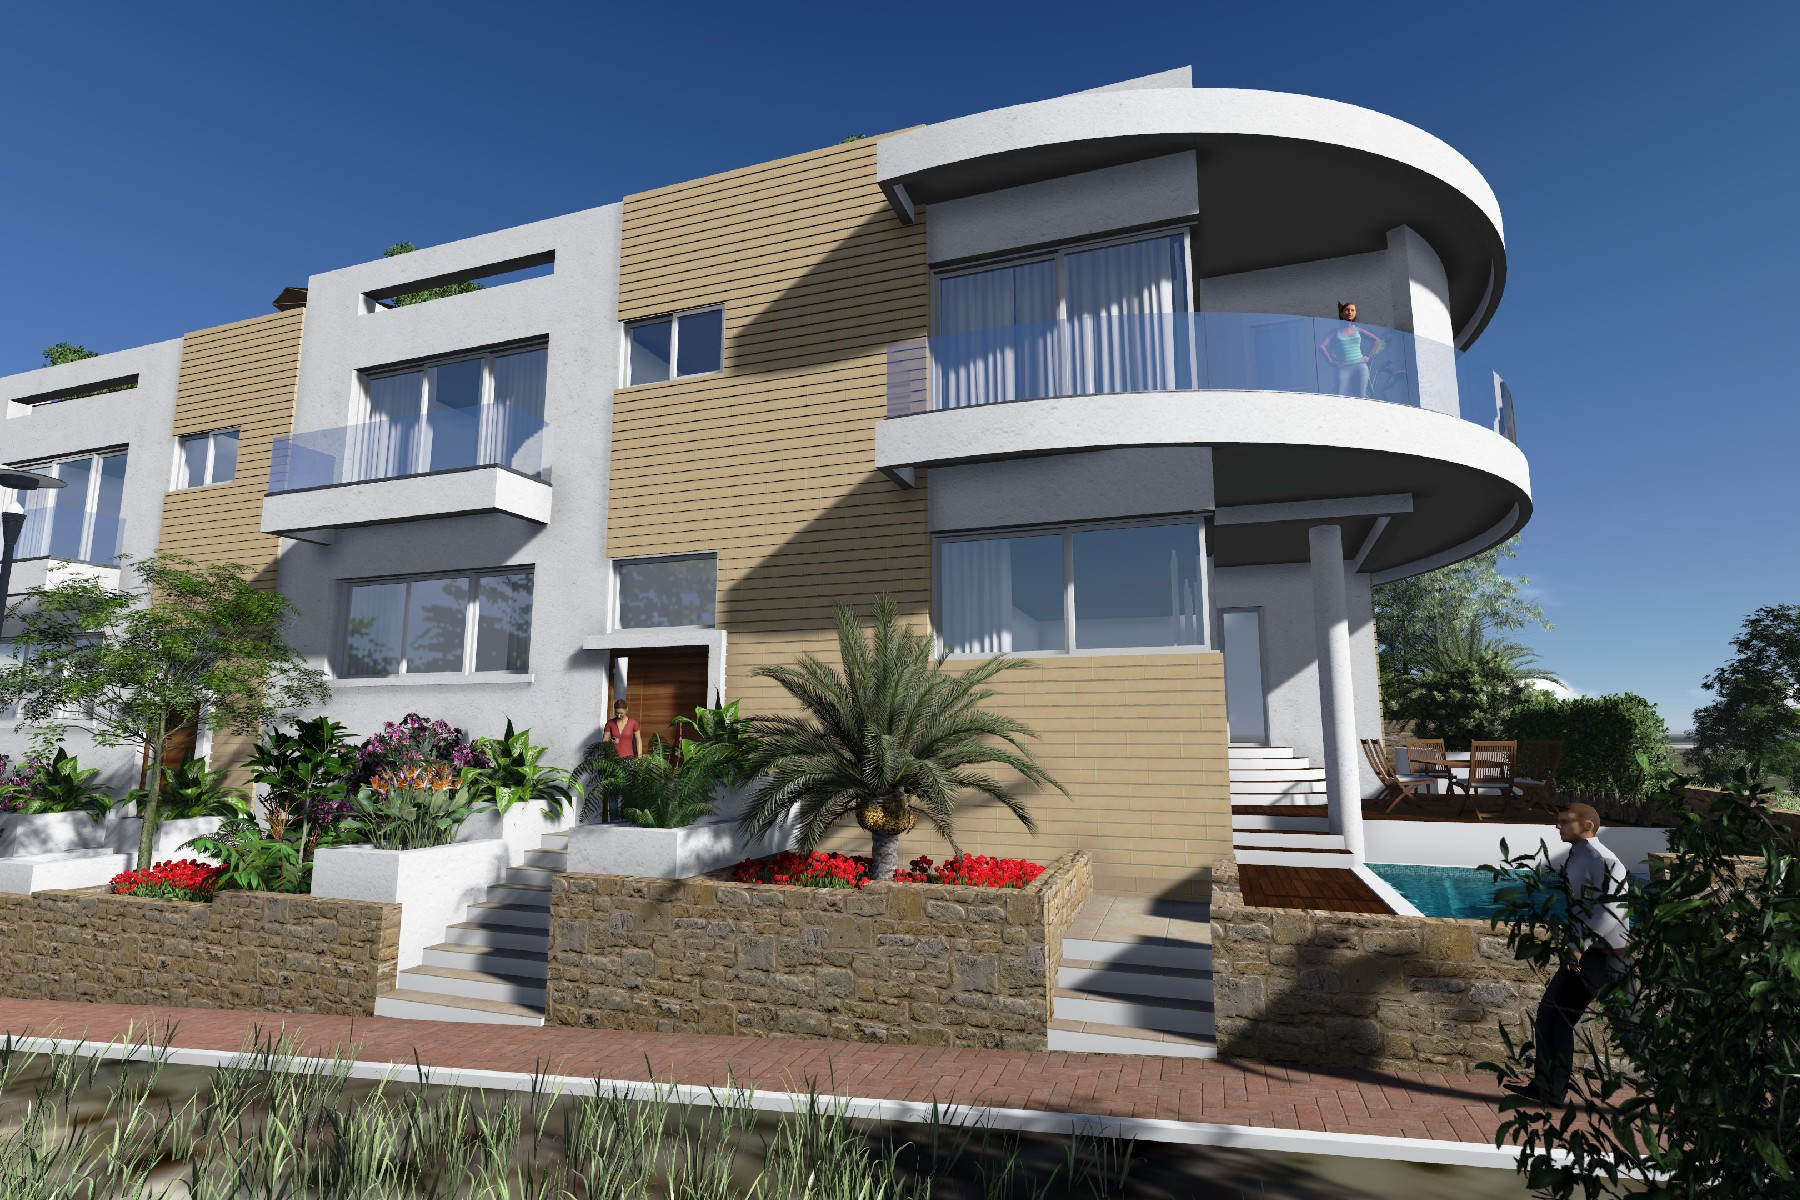 Other Residential for Sale at Luxury Terraced Houses Bahar Ic Caghaq, Sliema Valletta Surroundings Malta